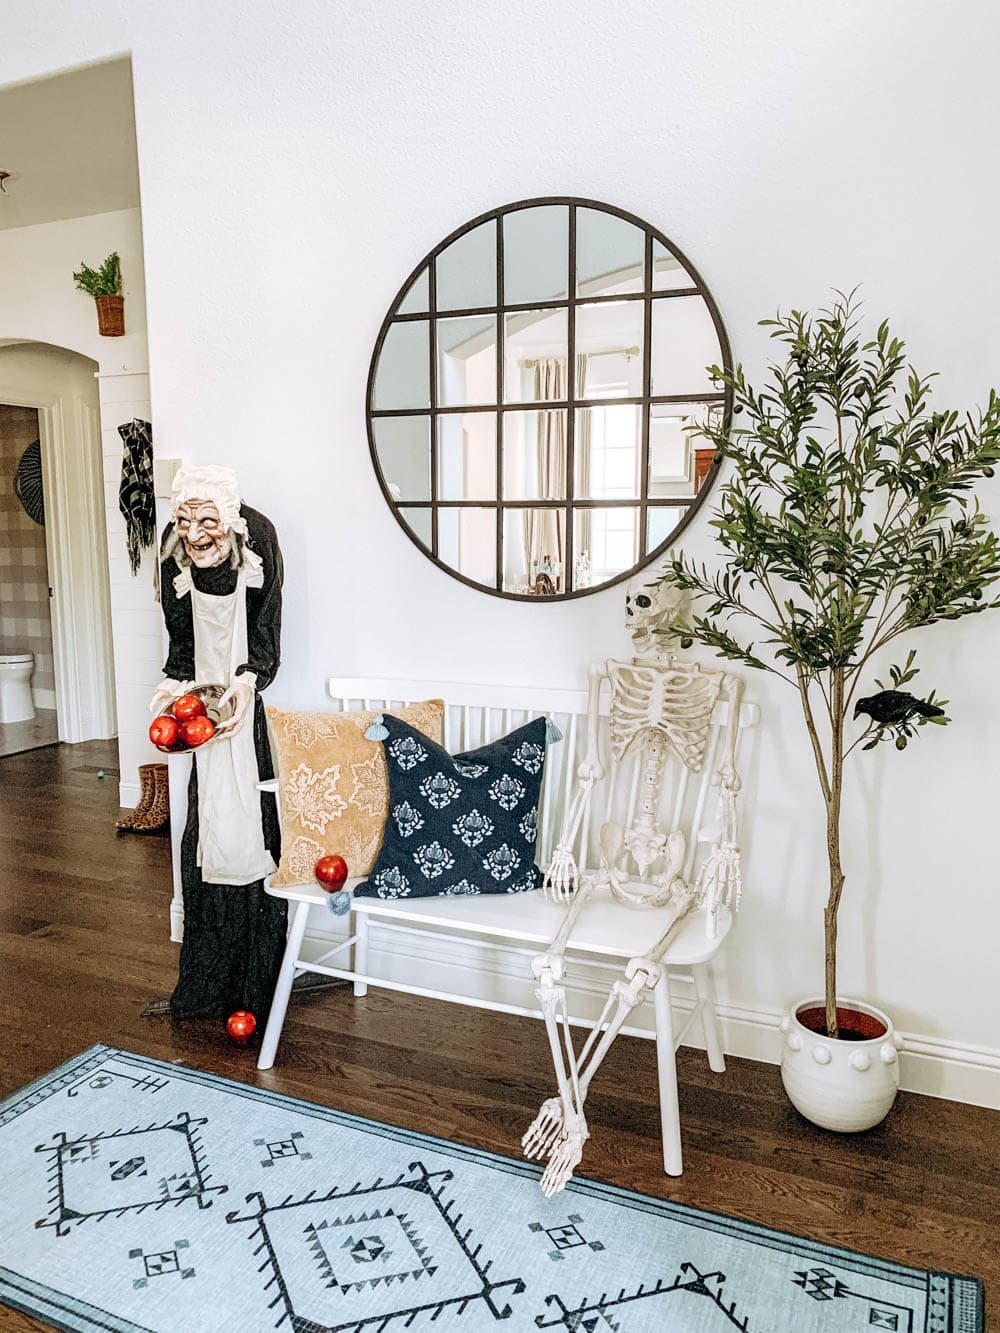 Halloween decor ideas with a talking witch, posable skeleton and birds. #ABlissfulNest #halloweendecor